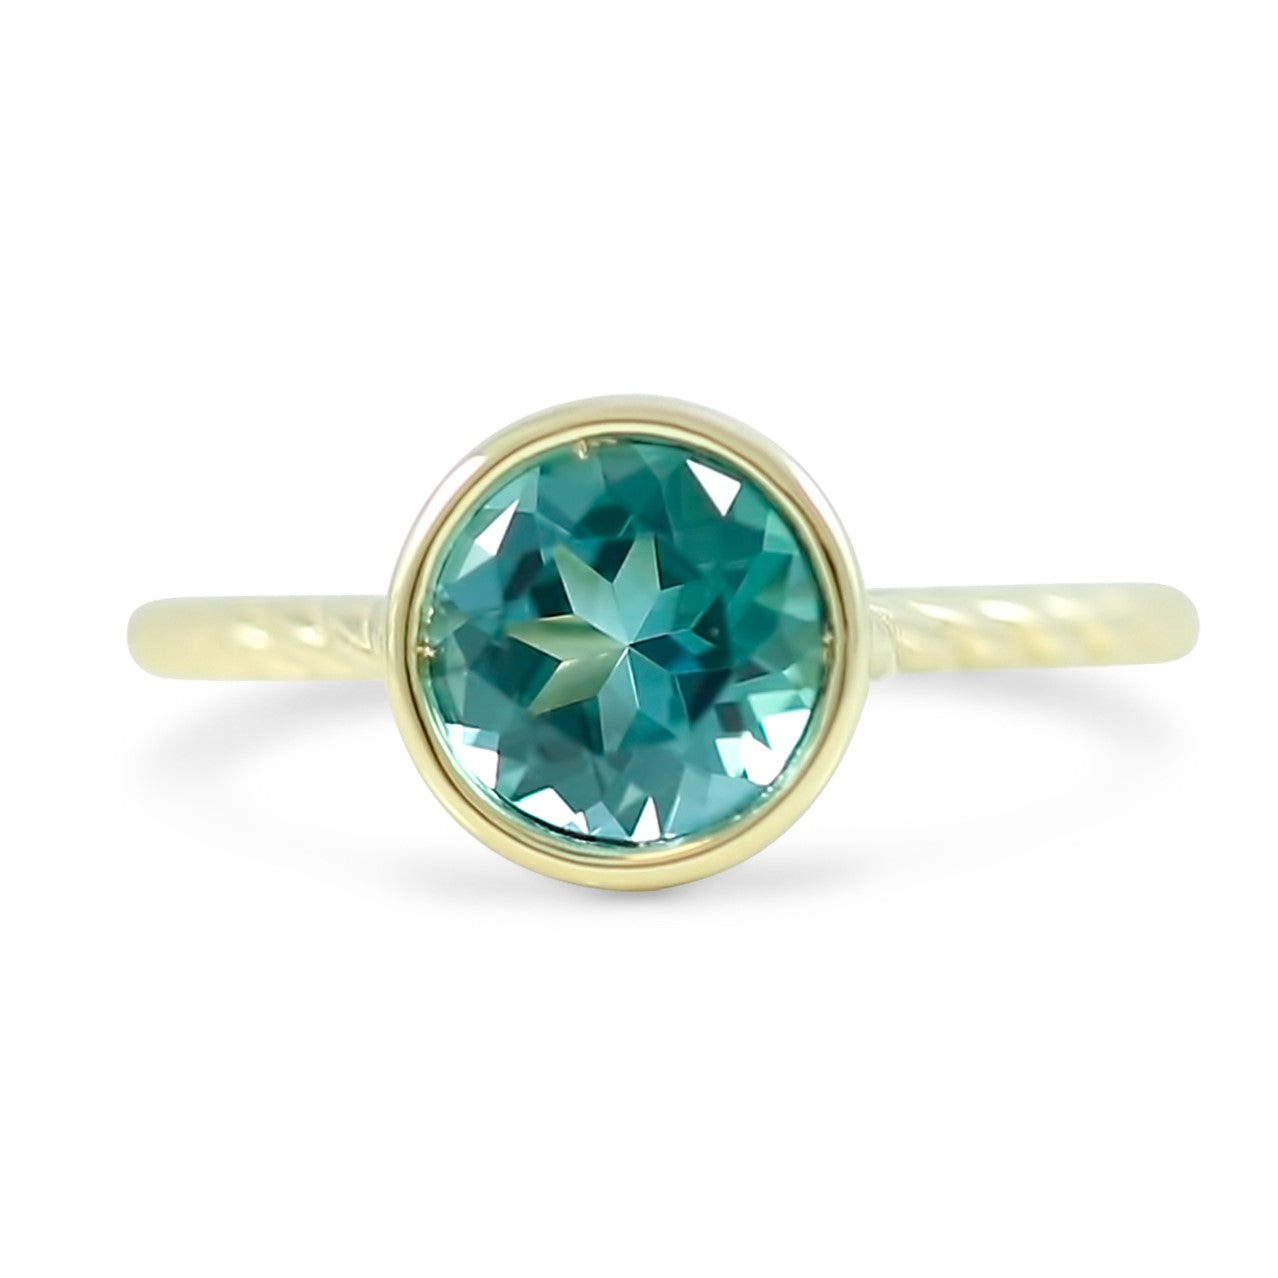 1.26ct round blue tourmaline ring bezel set in 14k yellow gold with a rope band